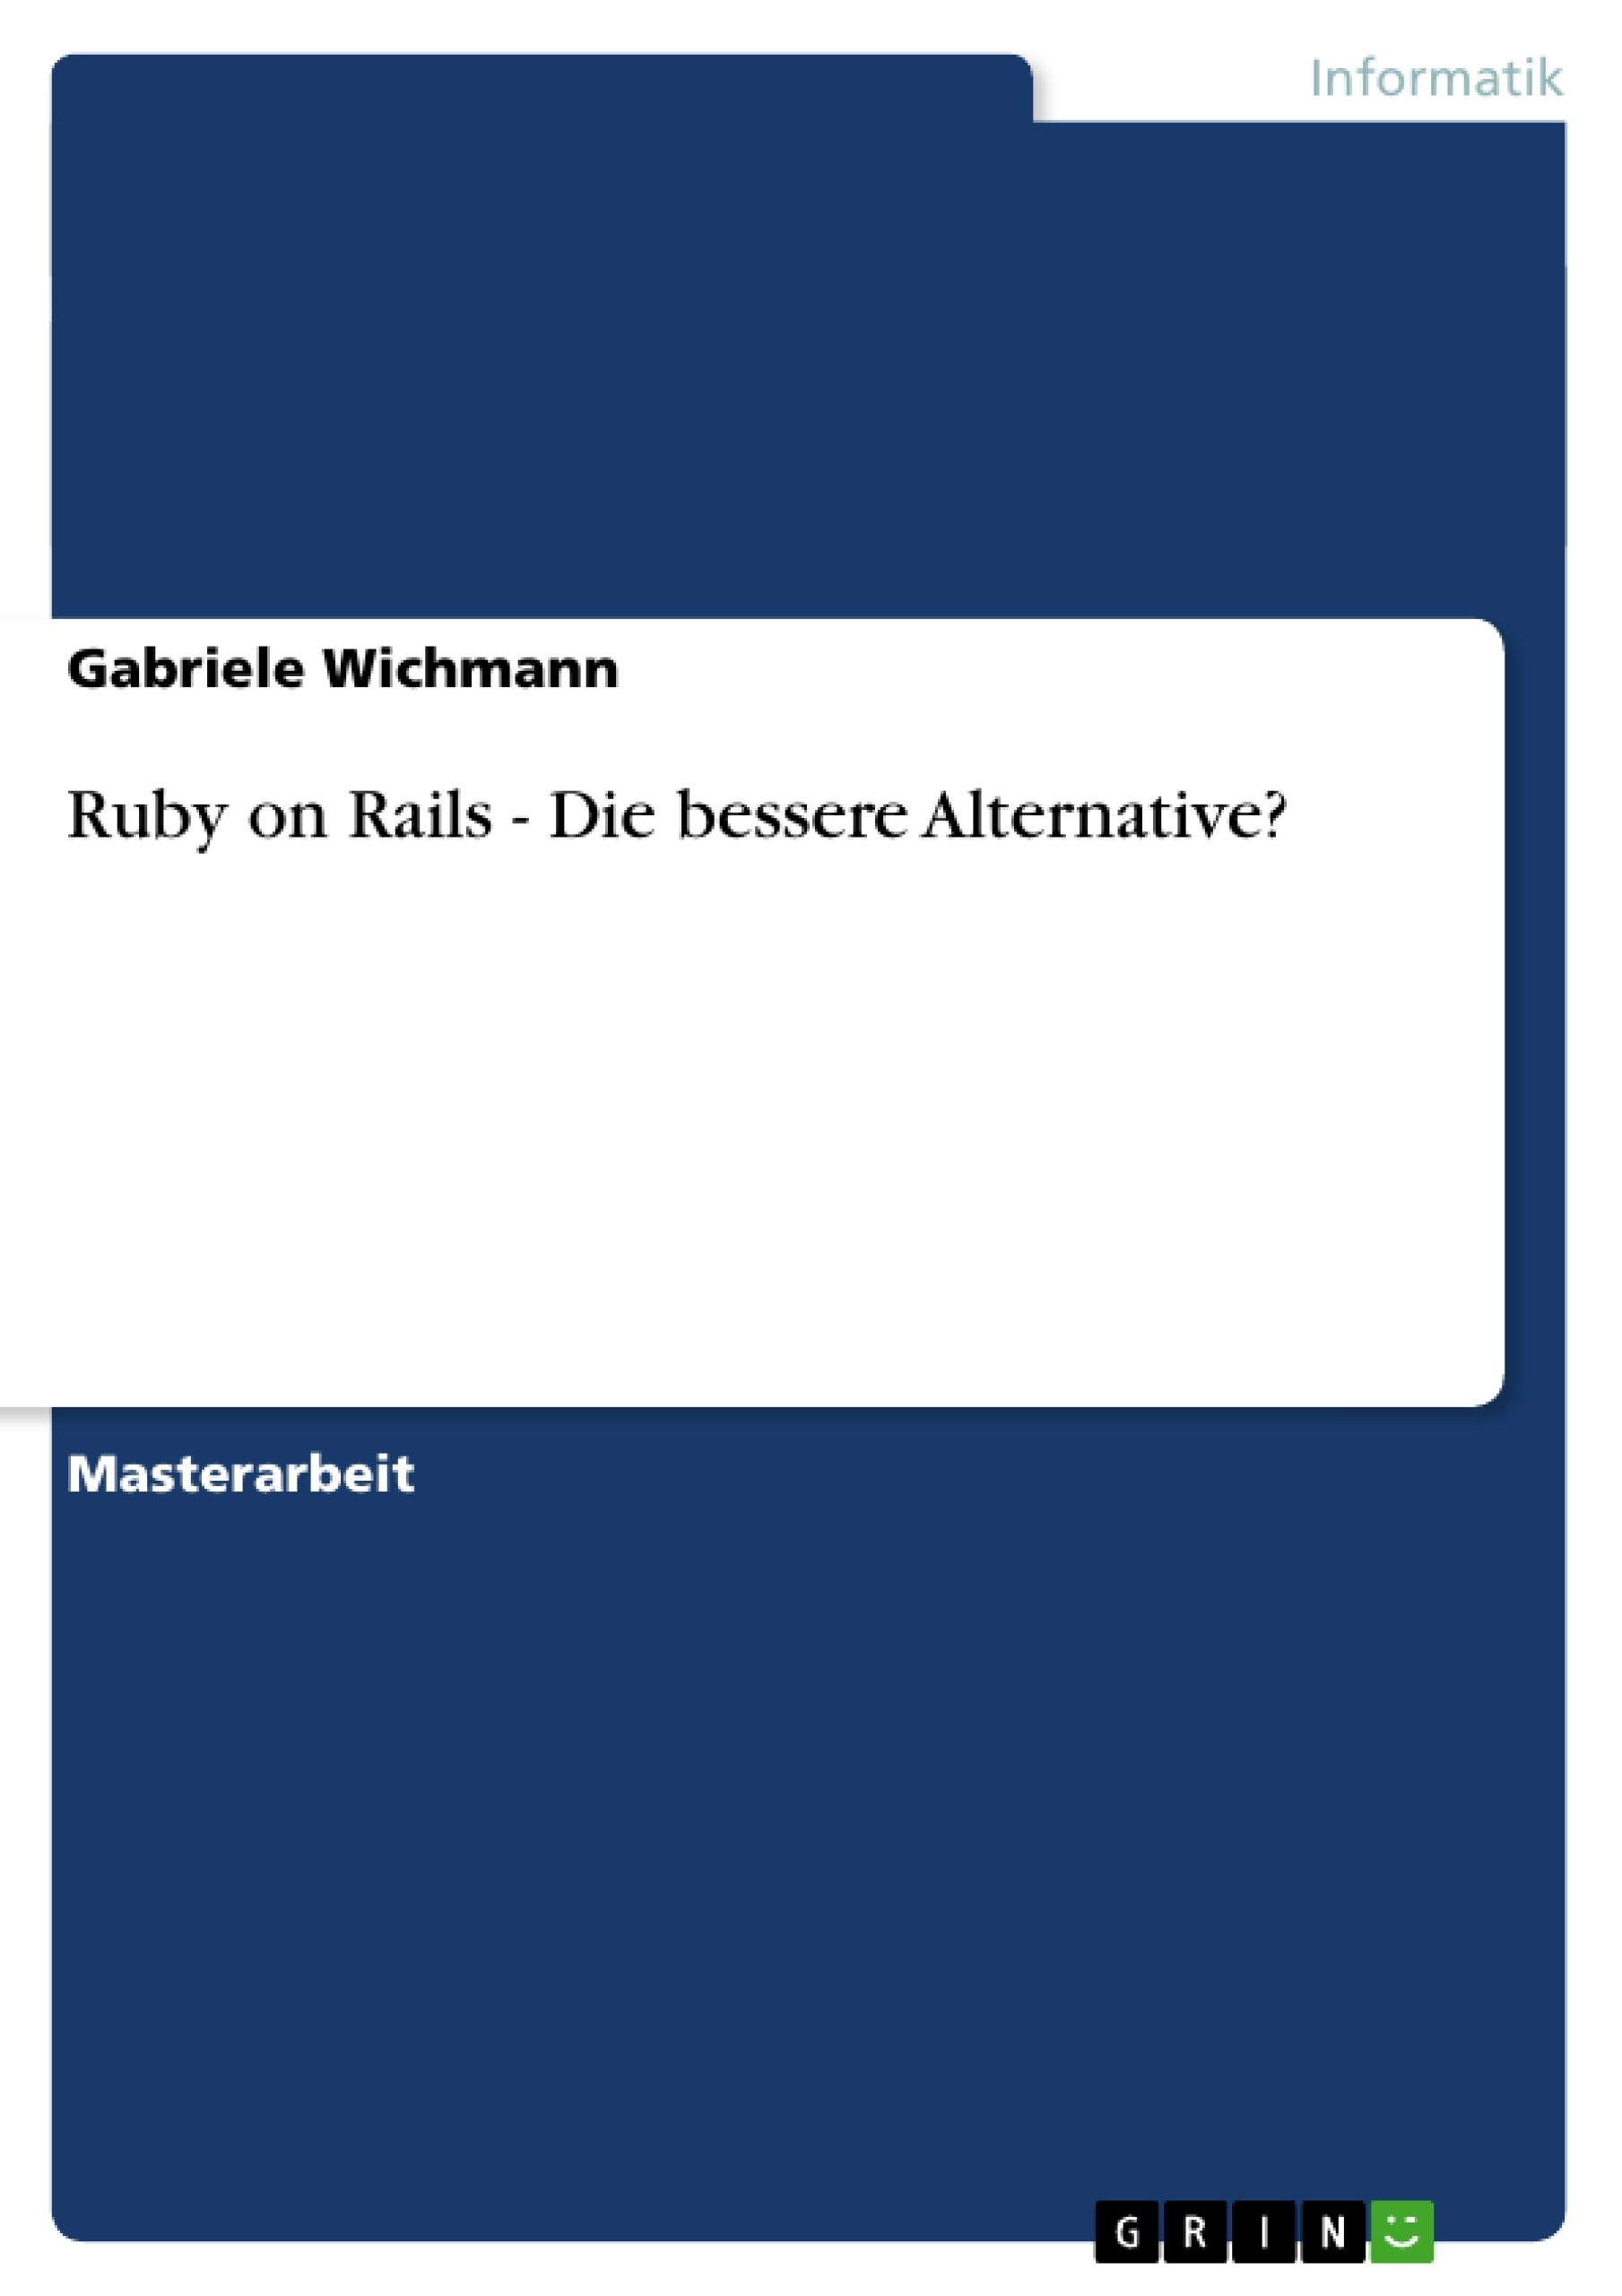 Titel: Ruby on Rails - Die bessere Alternative?